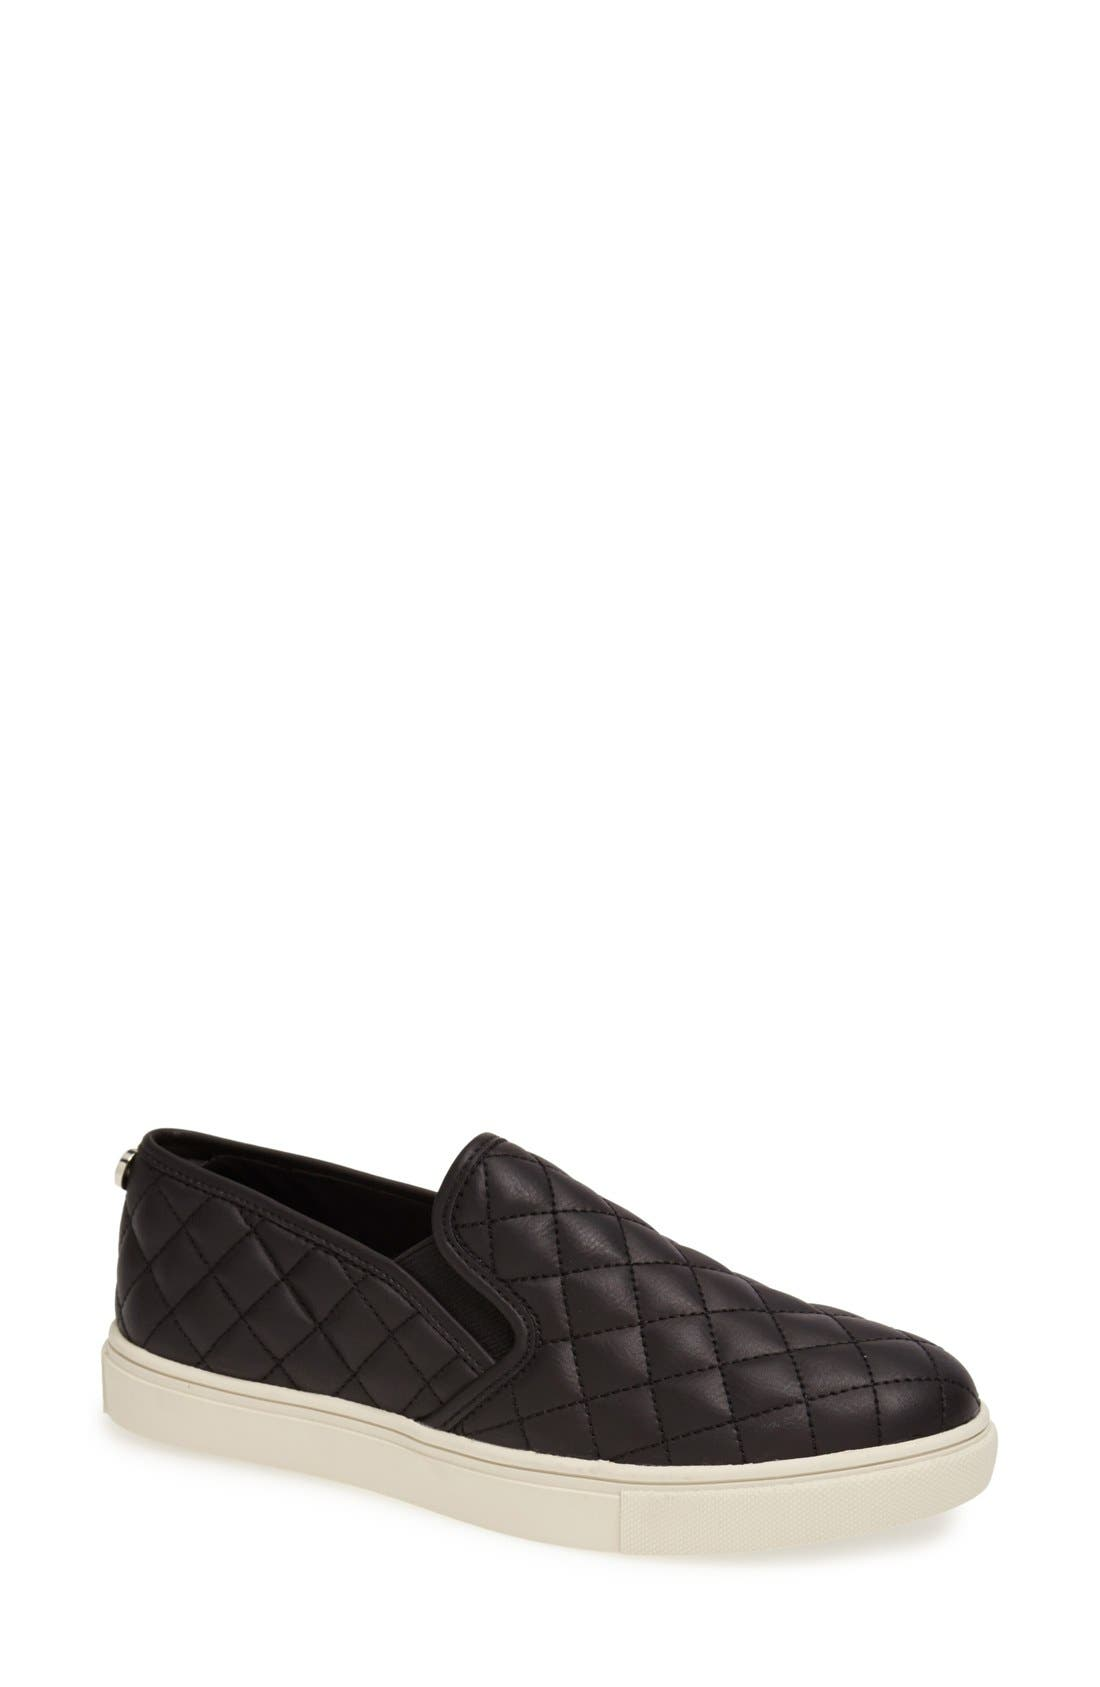 Alternate Image 1 Selected - Steve Madden 'Ecentrcq' Sneaker (Women)